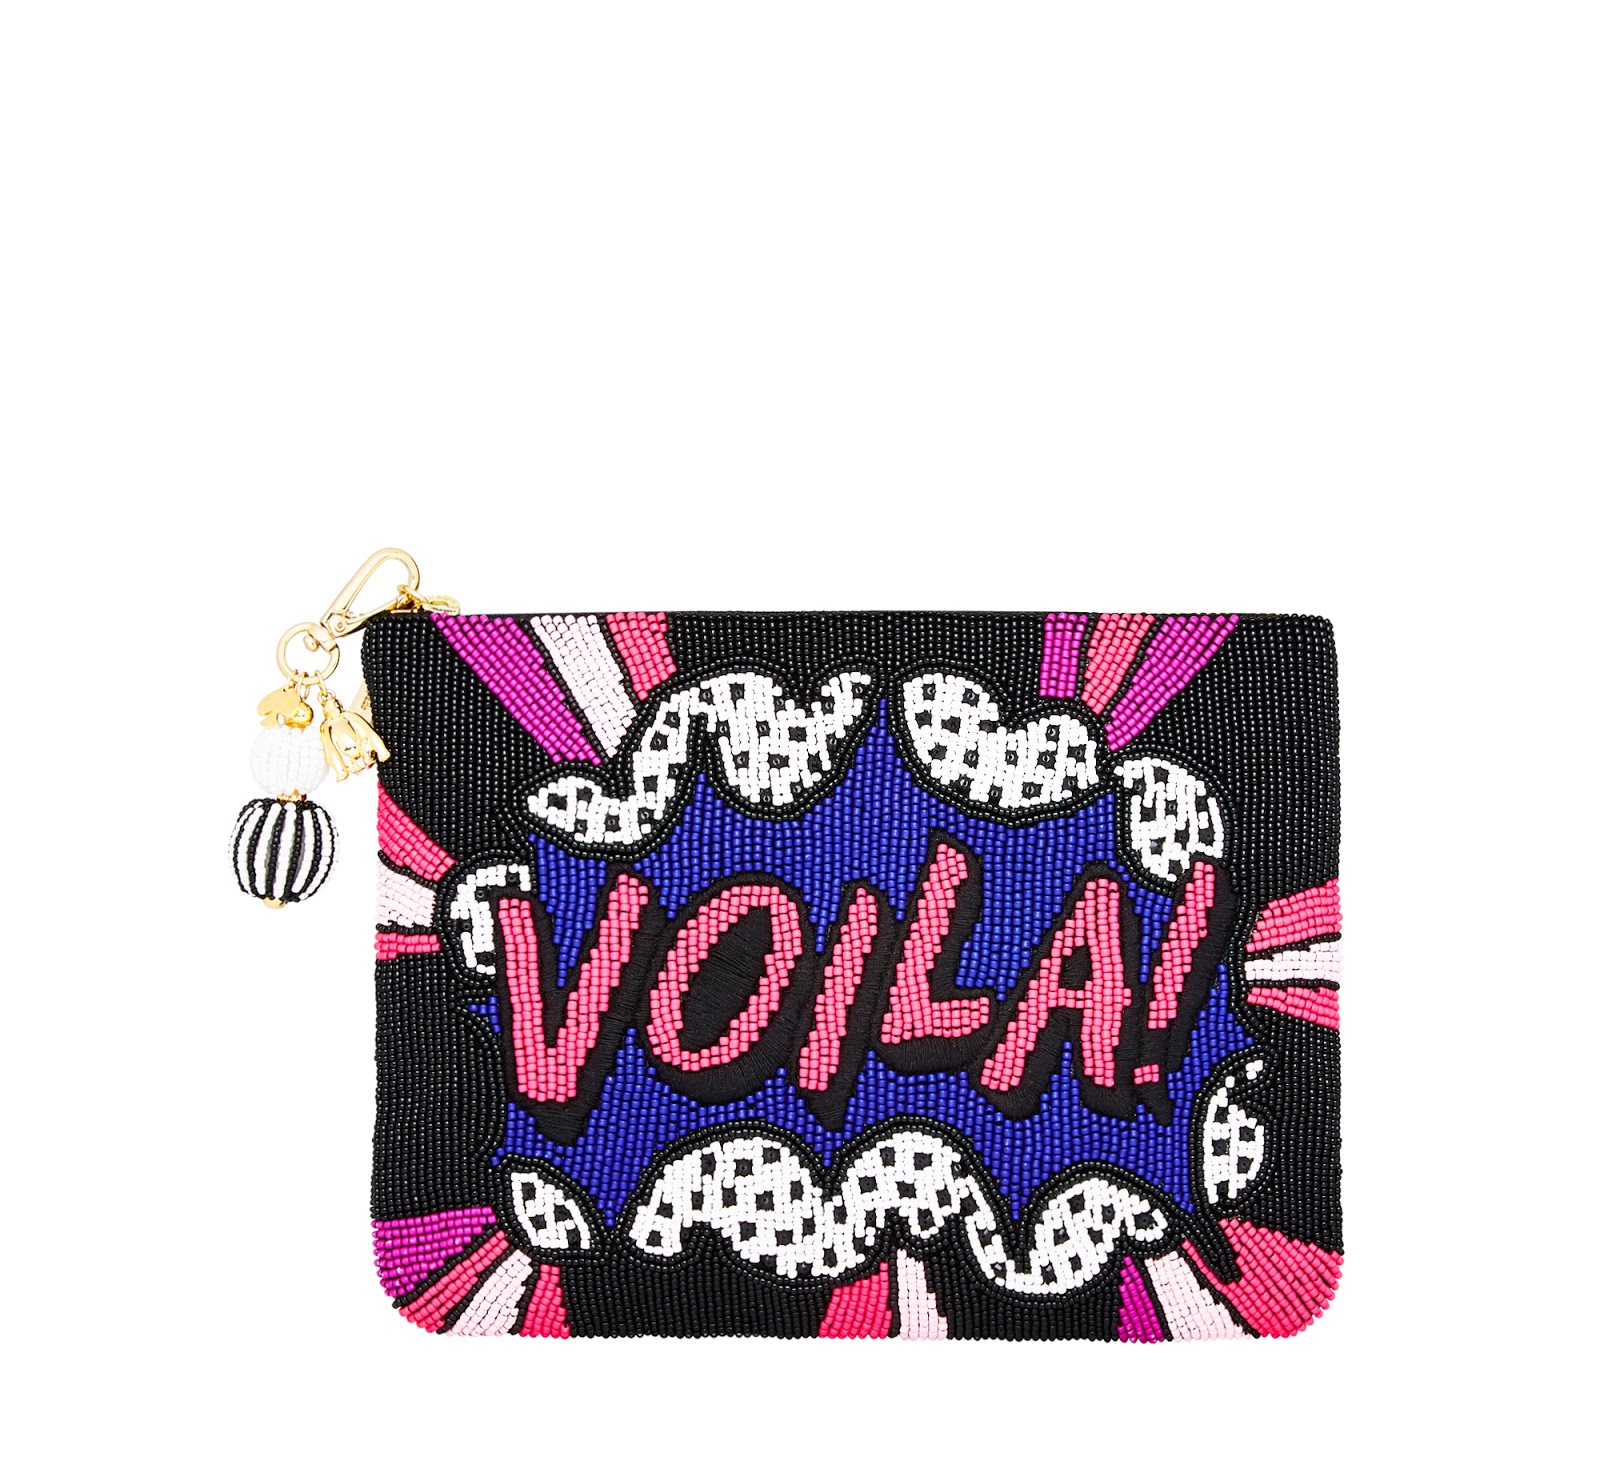 Kate Spade's Voila! Clutch From the On Purpose Collection